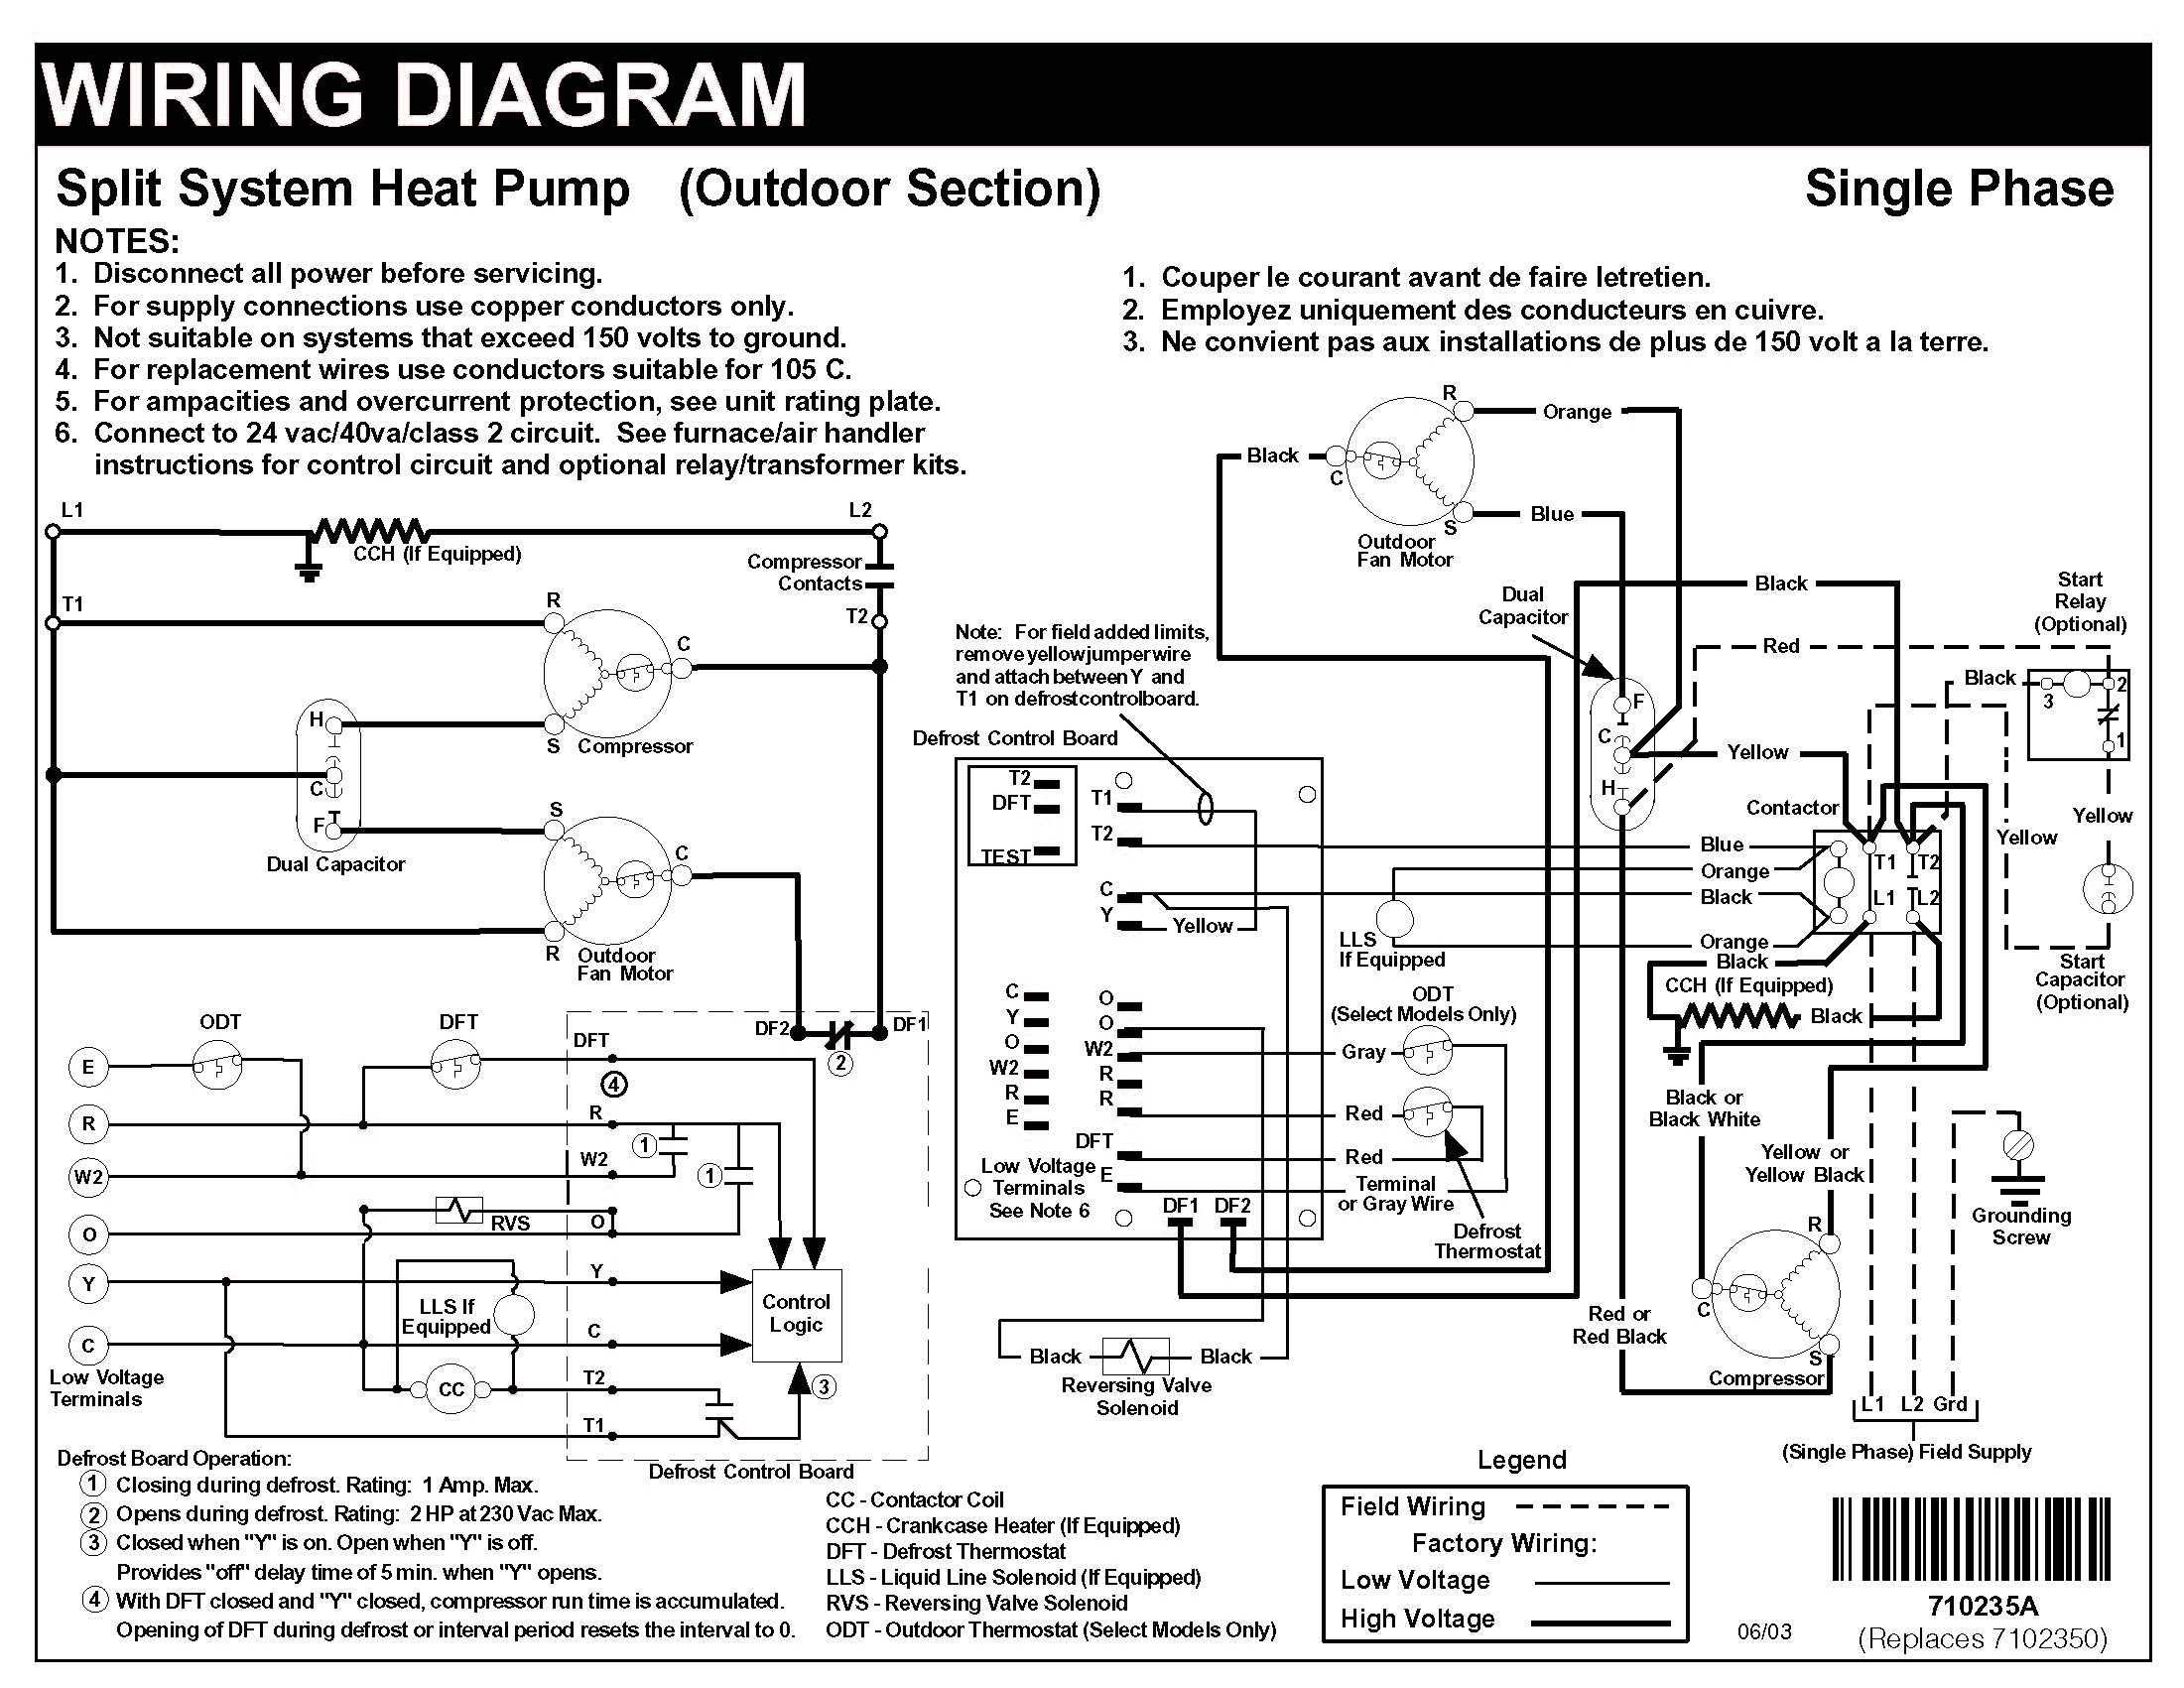 nordyne ac wiring diagram Download-Nordyne Ac Wiring Diagram Fresh Heat Pump Air Conditioner nordyne Heat Pump thermostat Wiring 3-q